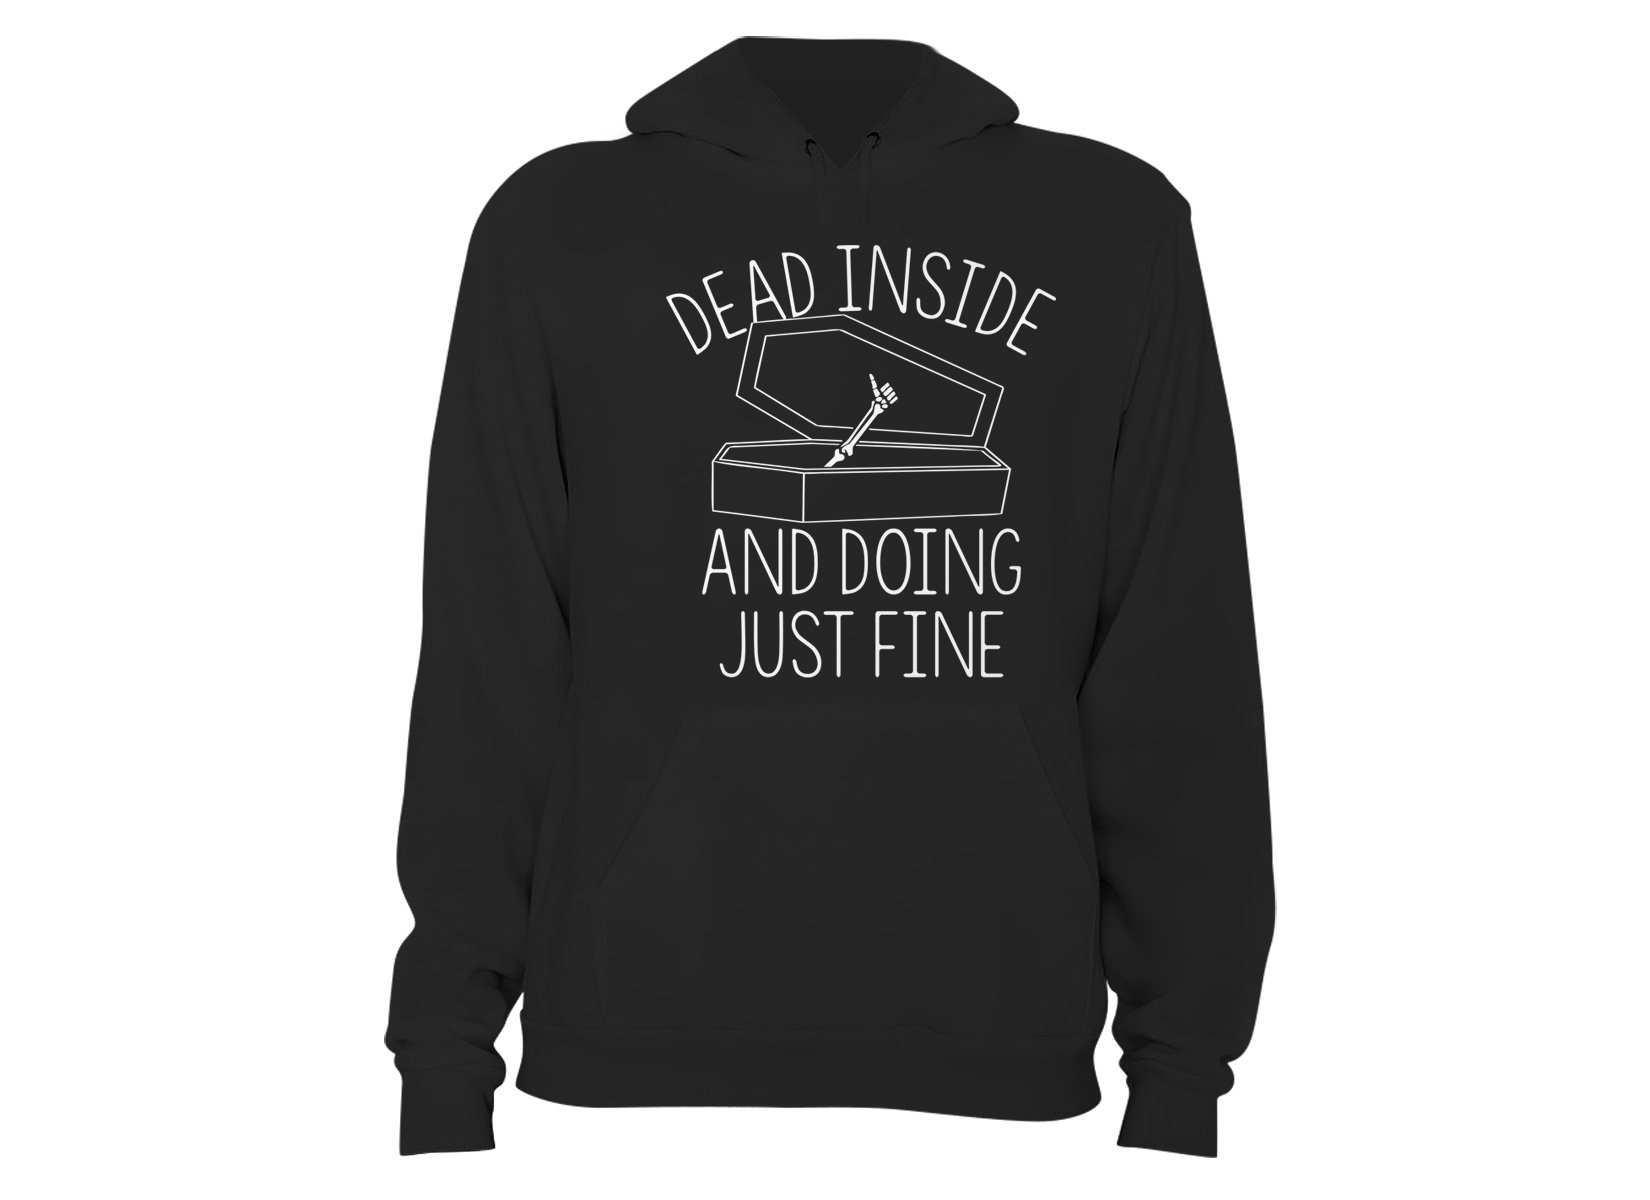 Dead Inside And Doing Fine on Hoodie